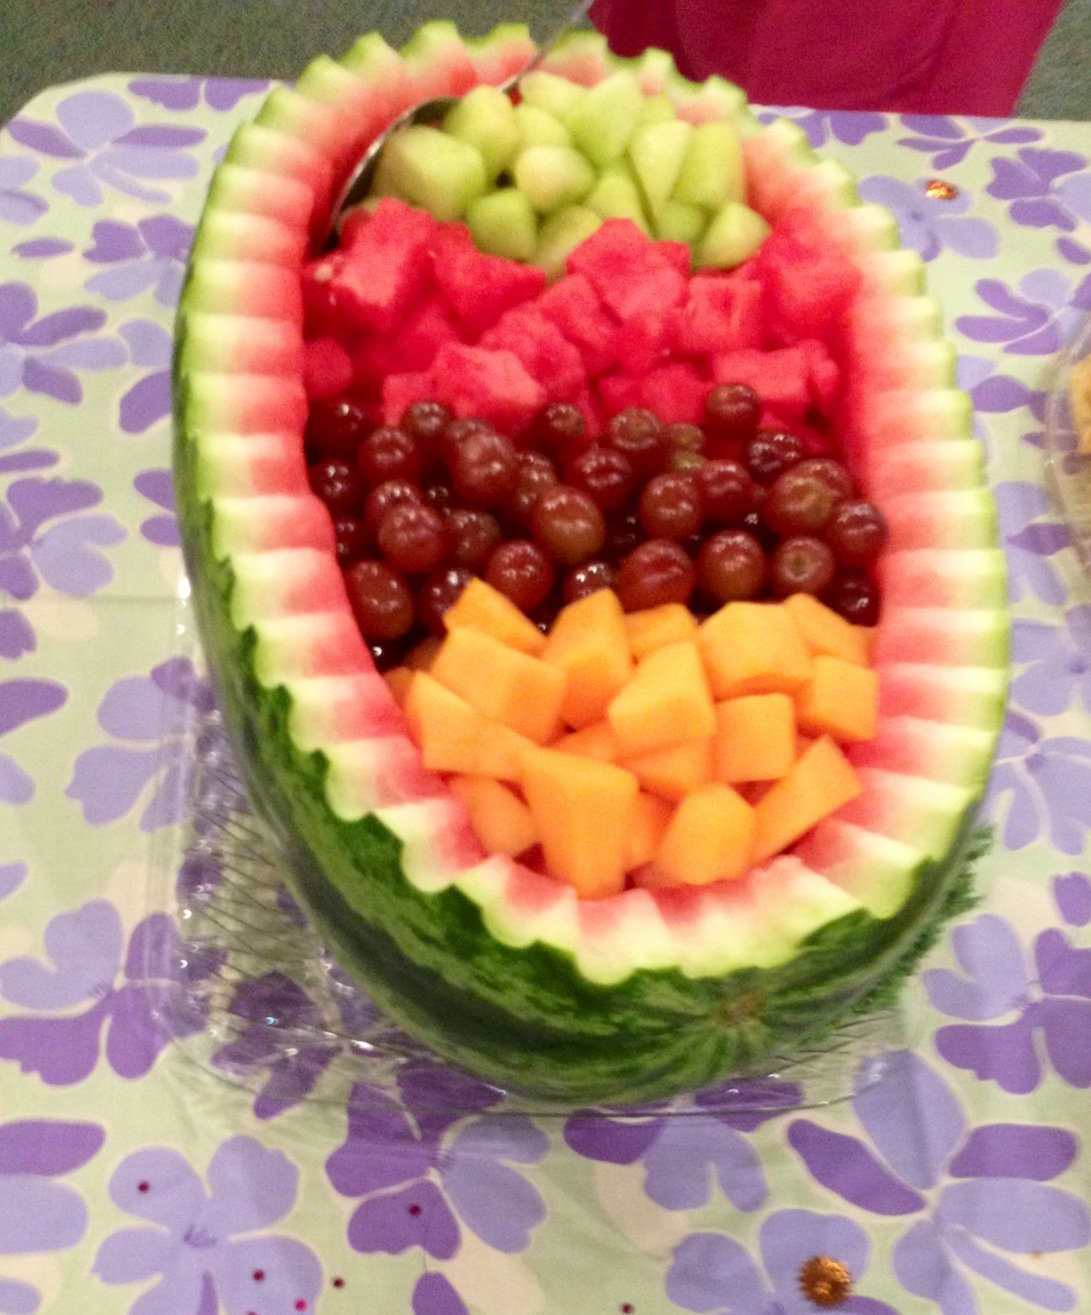 The most creative watermelon ideas